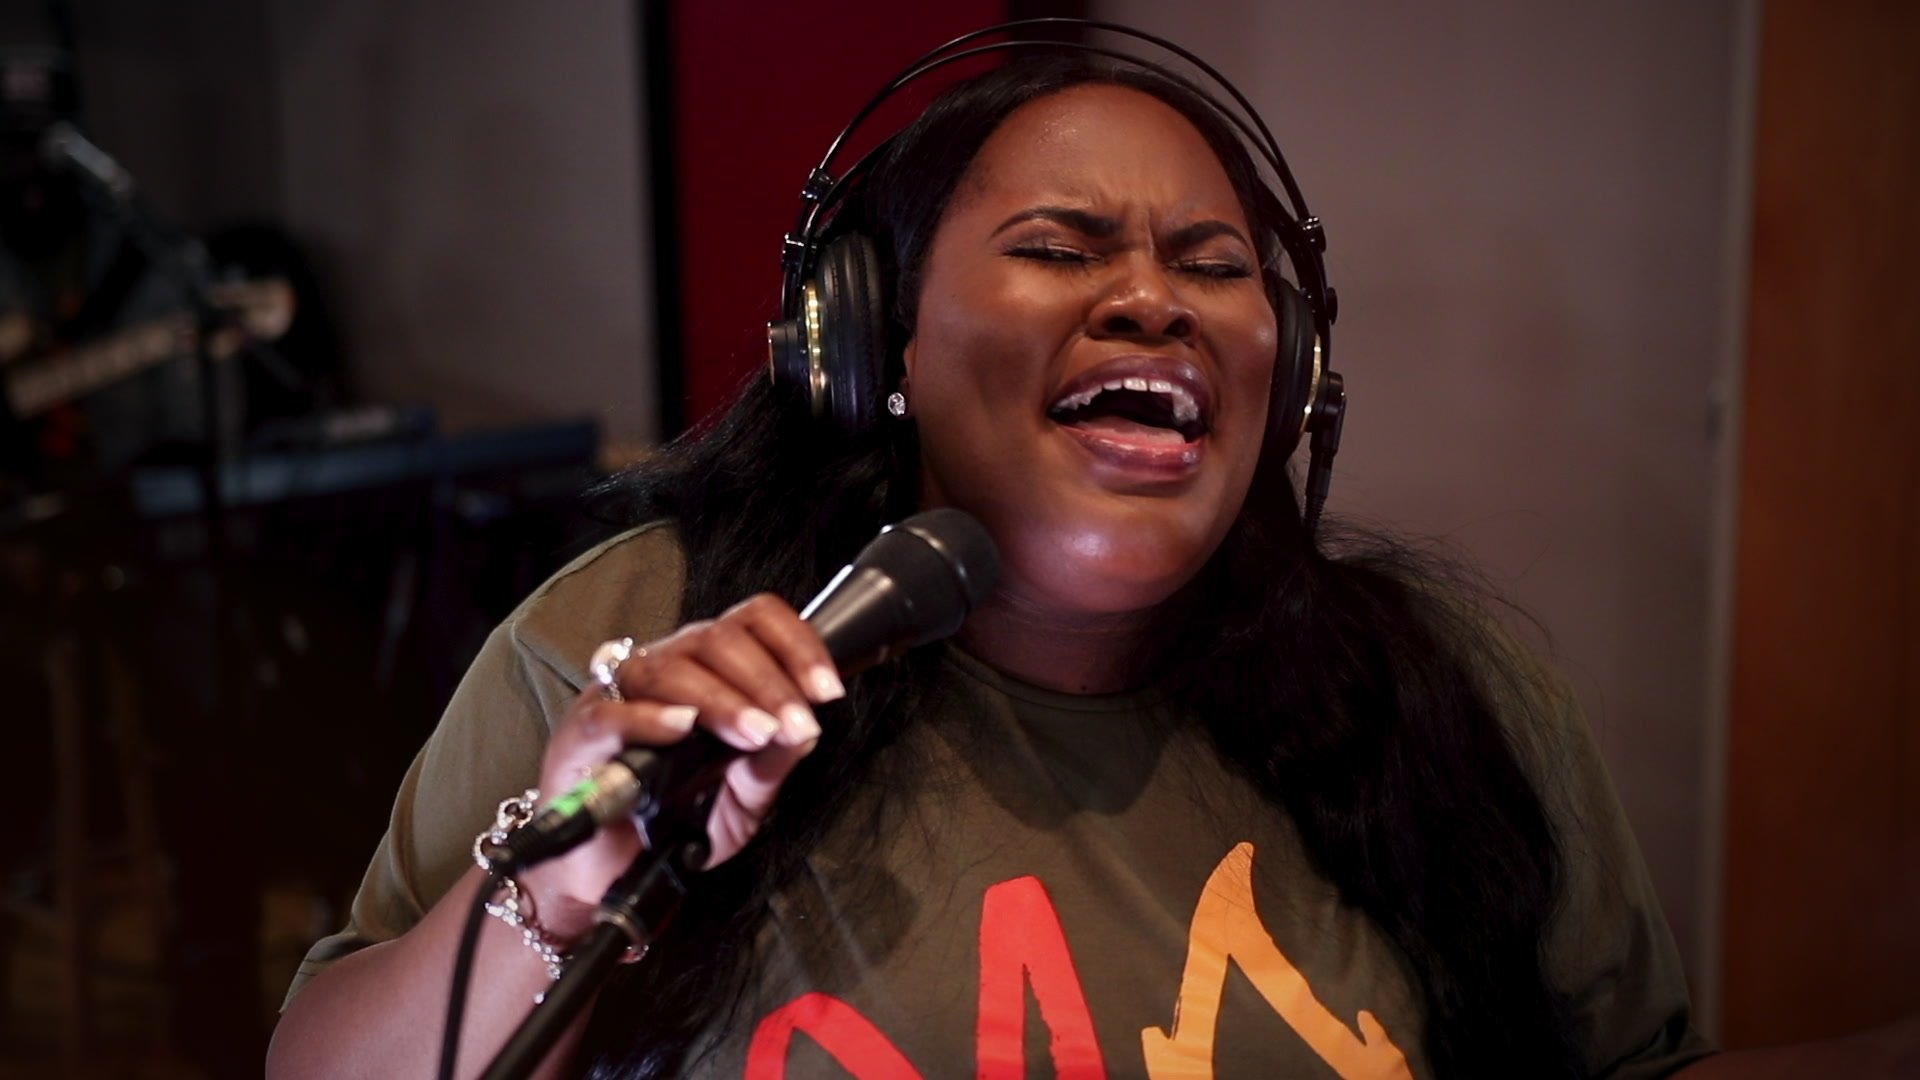 YOU KNOW MY NAME BY TASHA COBBS MP3 DOWNLOAD